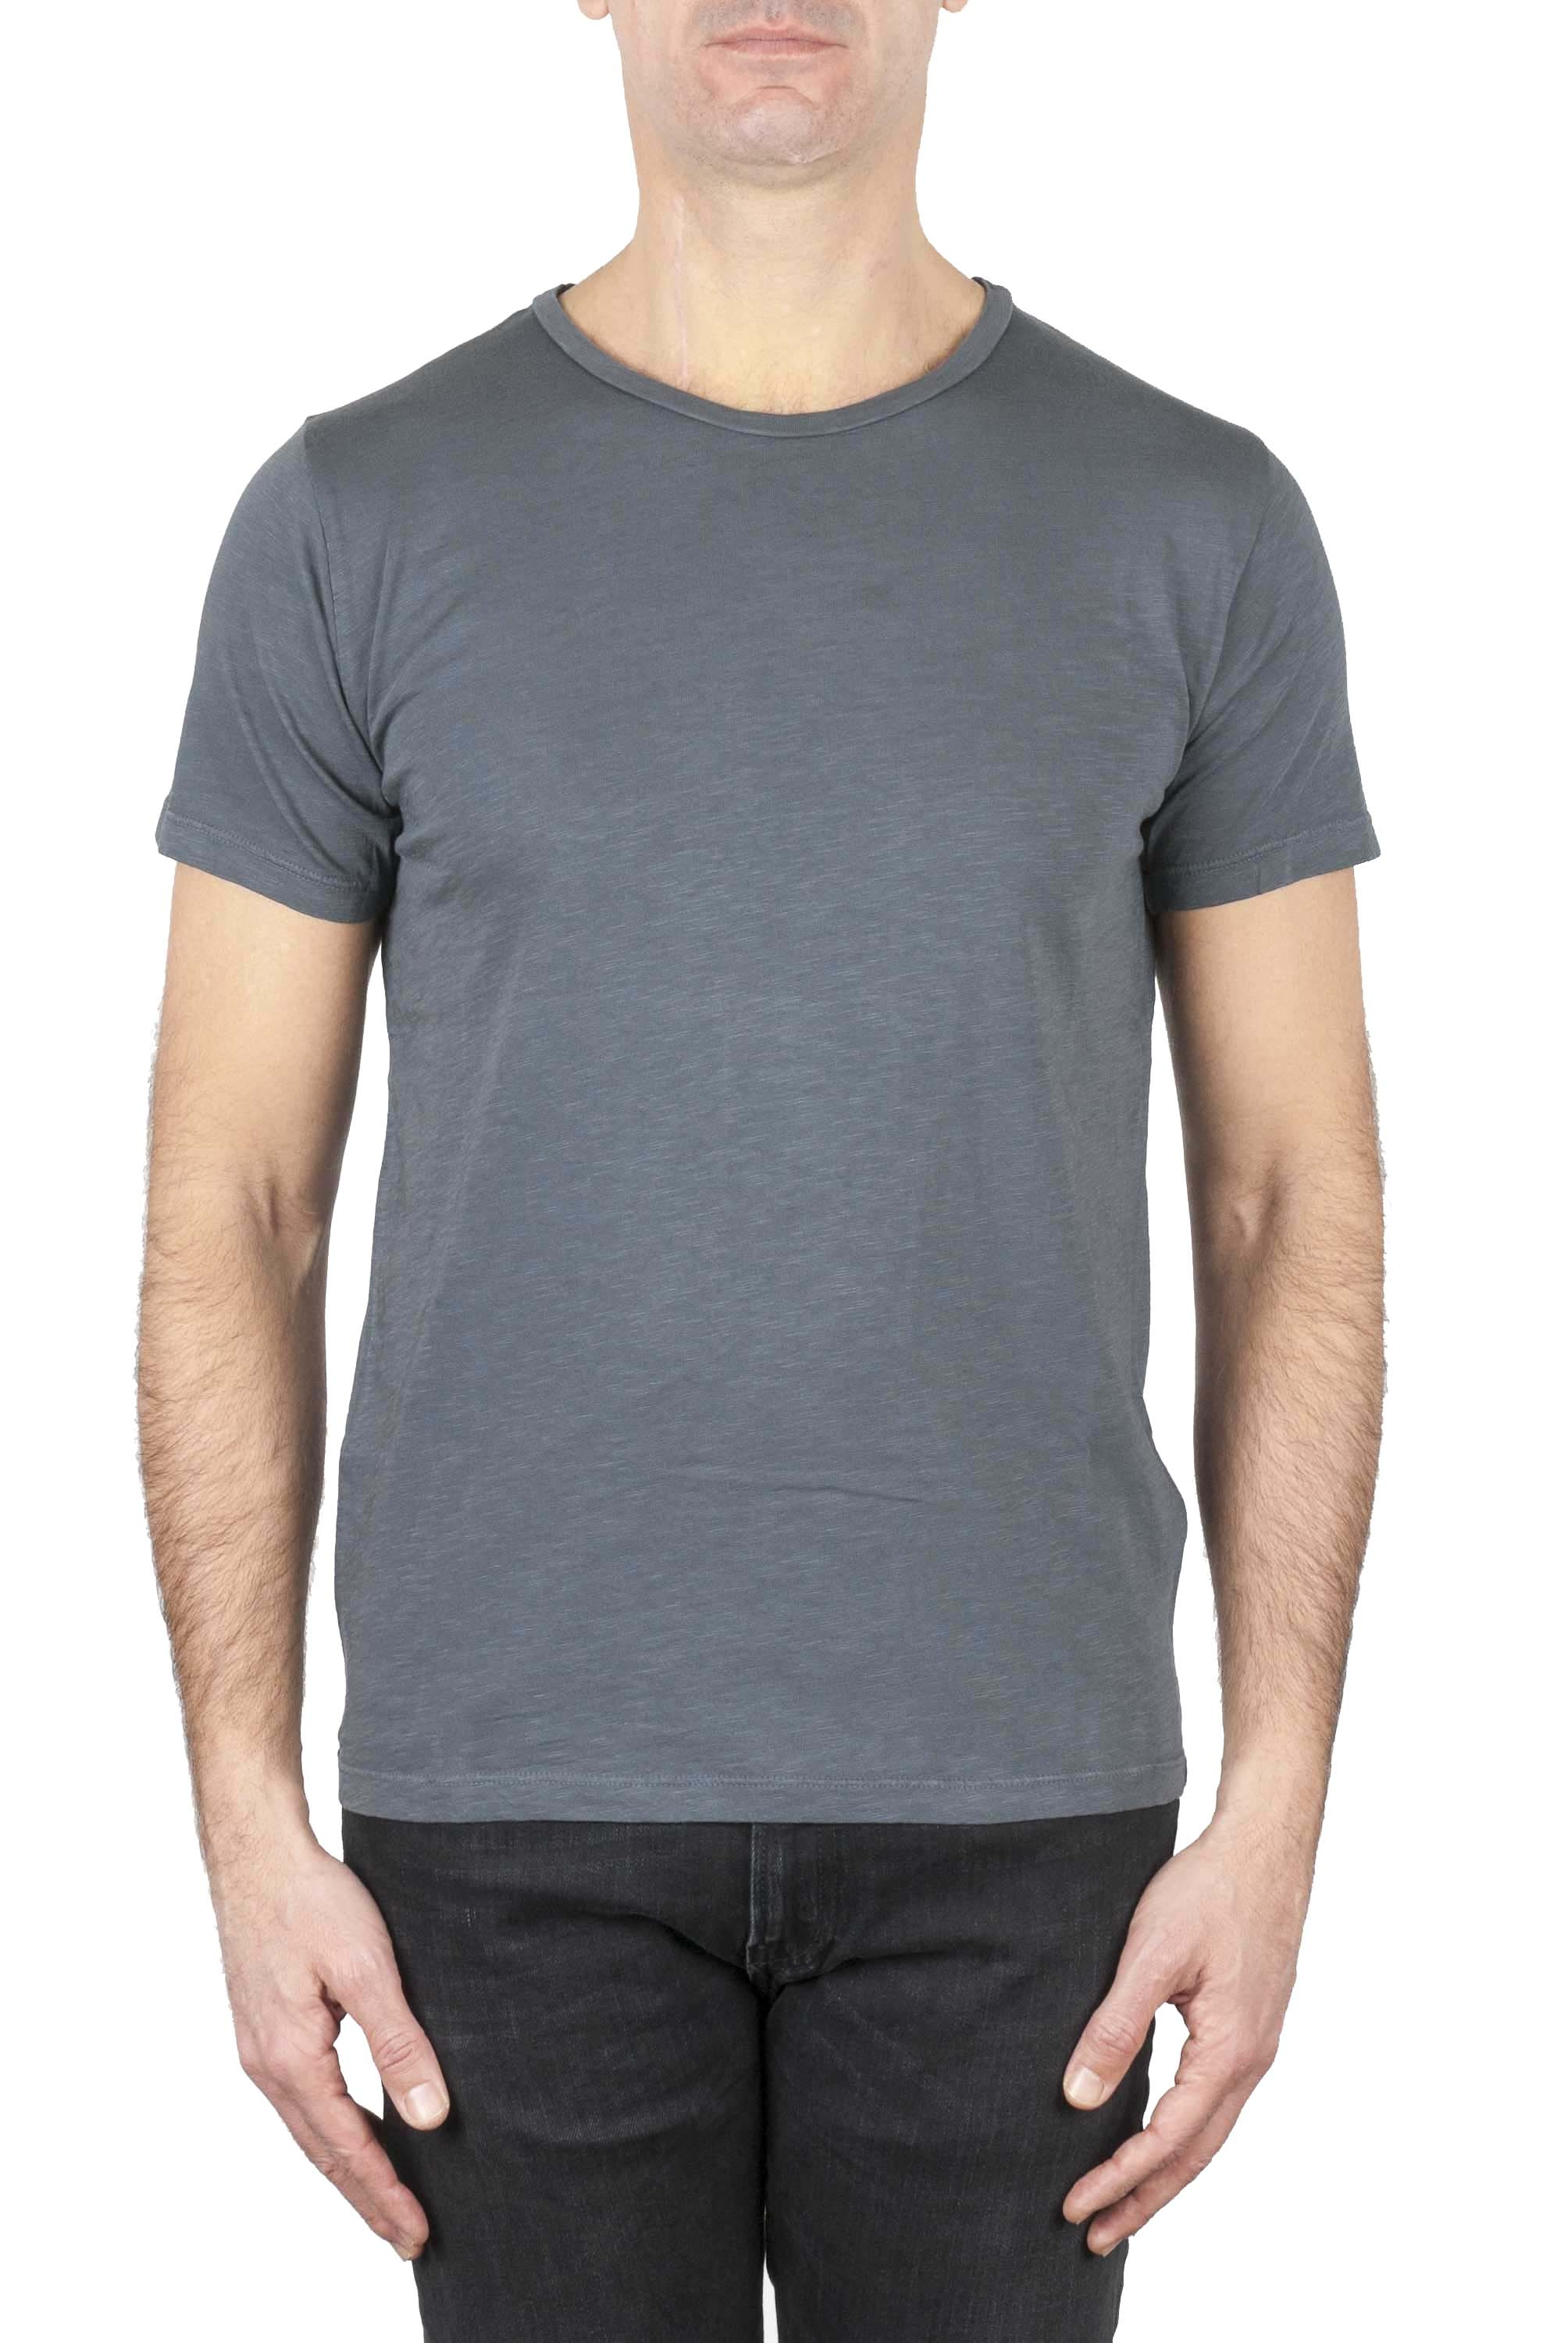 SBU 01641_19AW Flamed cotton scoop neck t-shirt dark grey 01